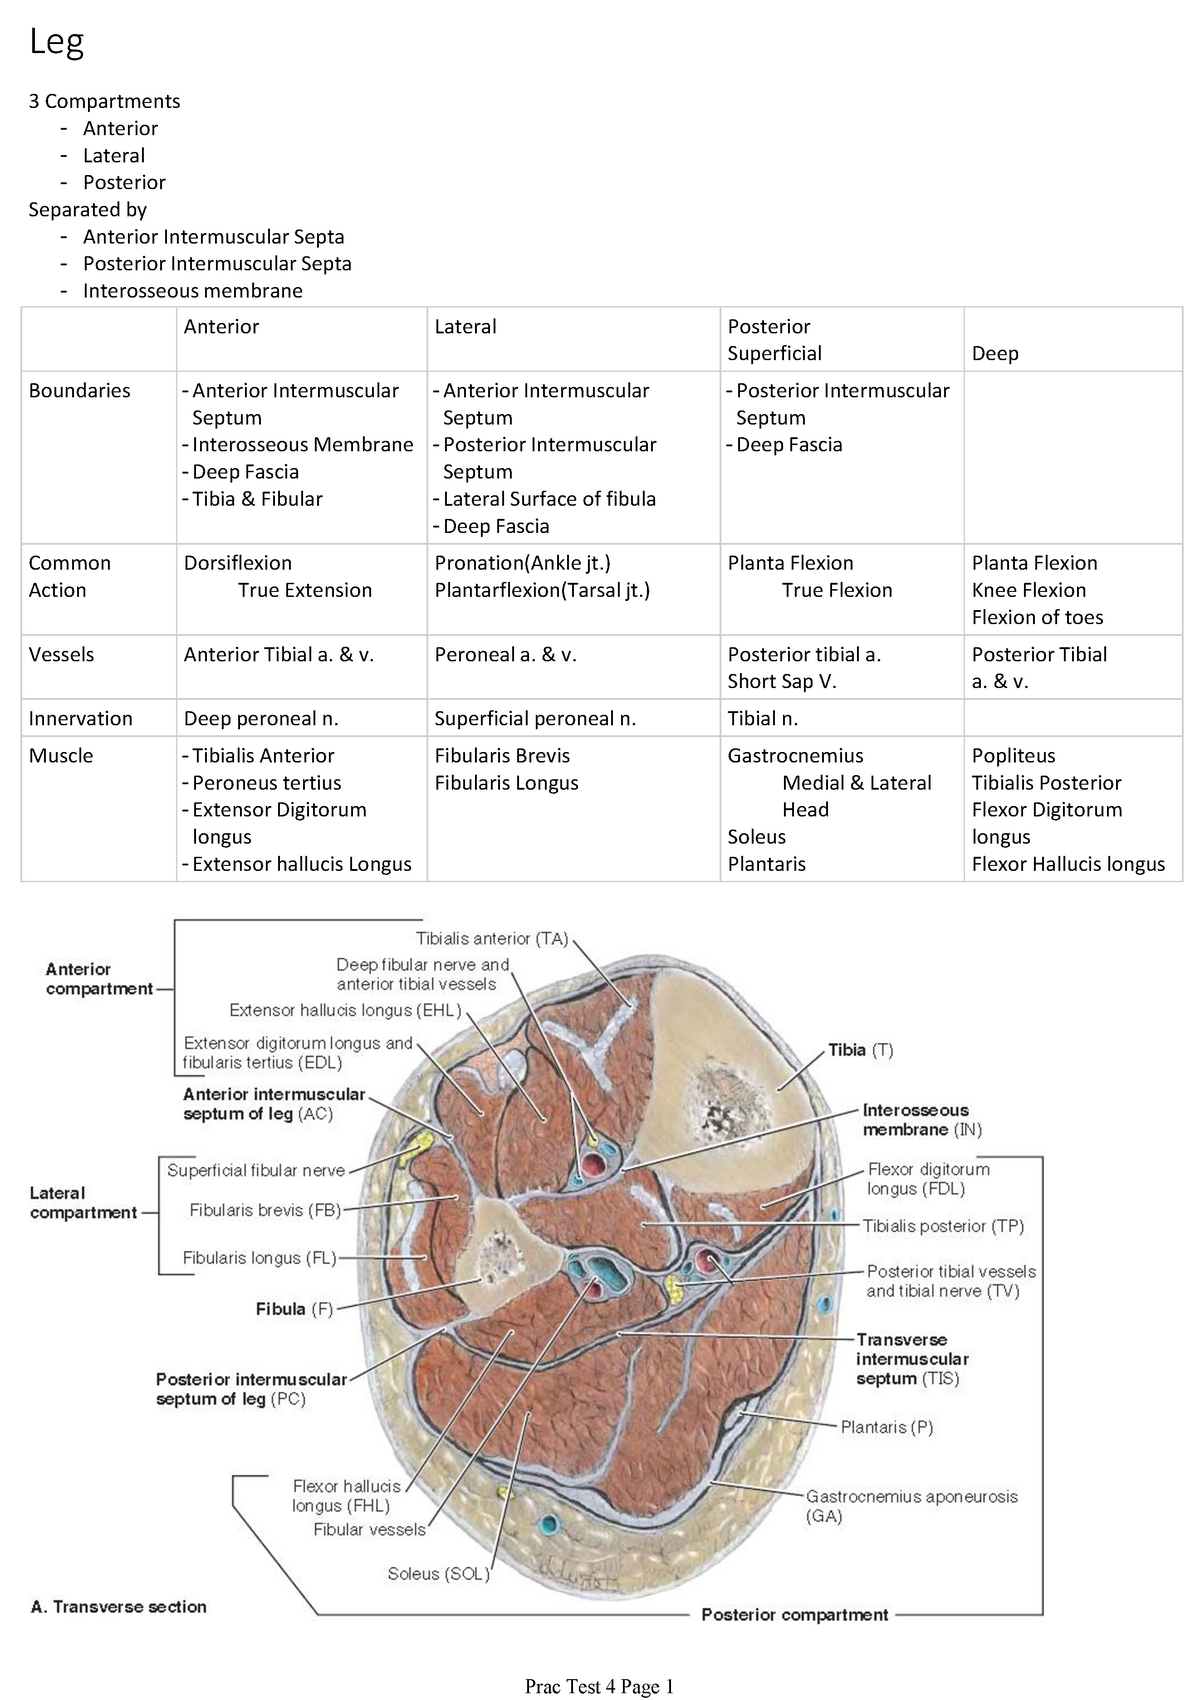 Prac Test 4 Leg - Summary of muscles - HBHS: Bachelor of